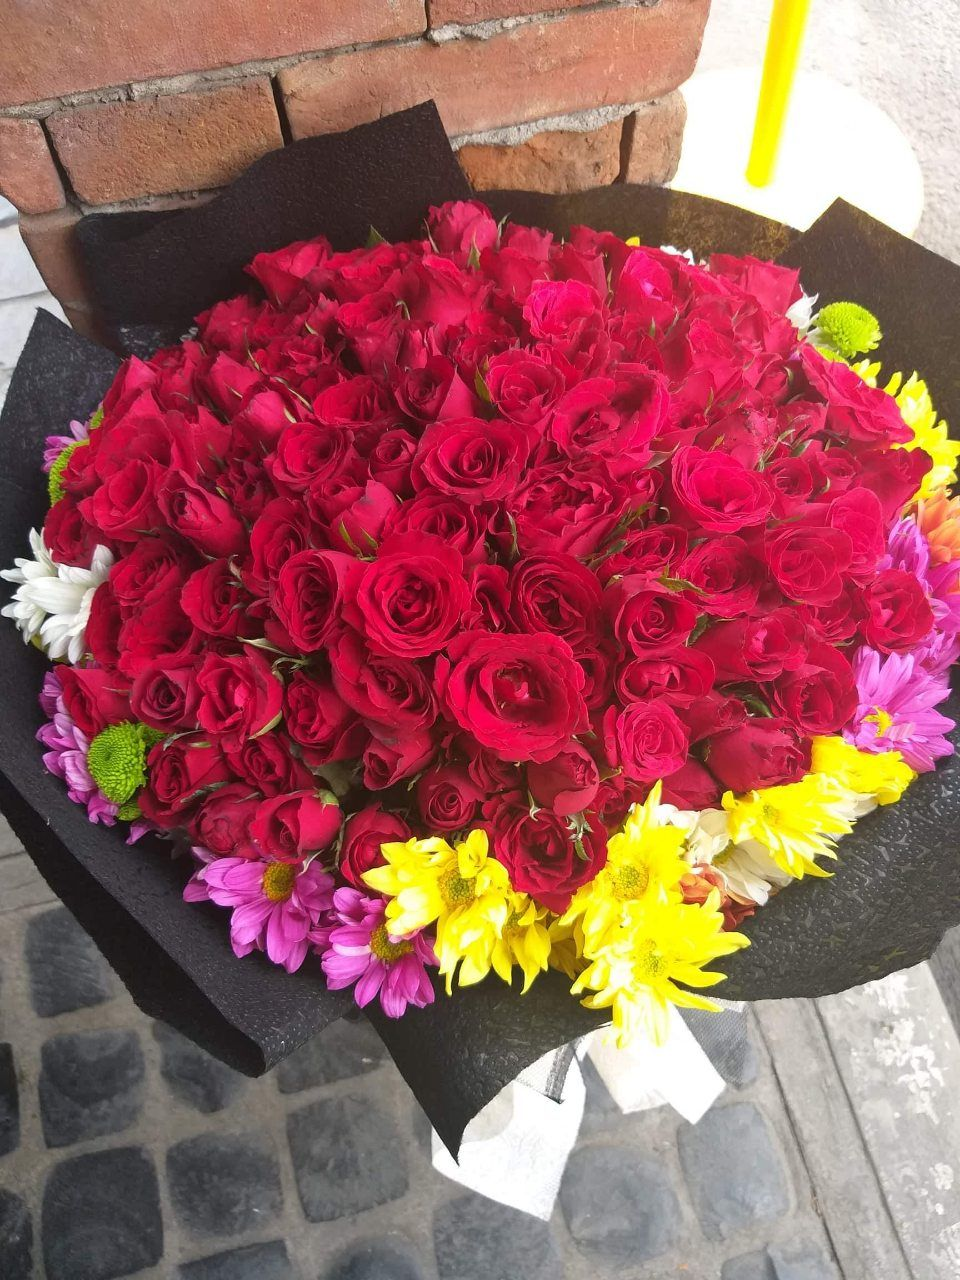 Successfully Delivered Flowerbouquet Rosebouquet Flowers Roses Manilaflorist Philippine Flower Delivery Flower Delivery Service Same Day Flower Delivery